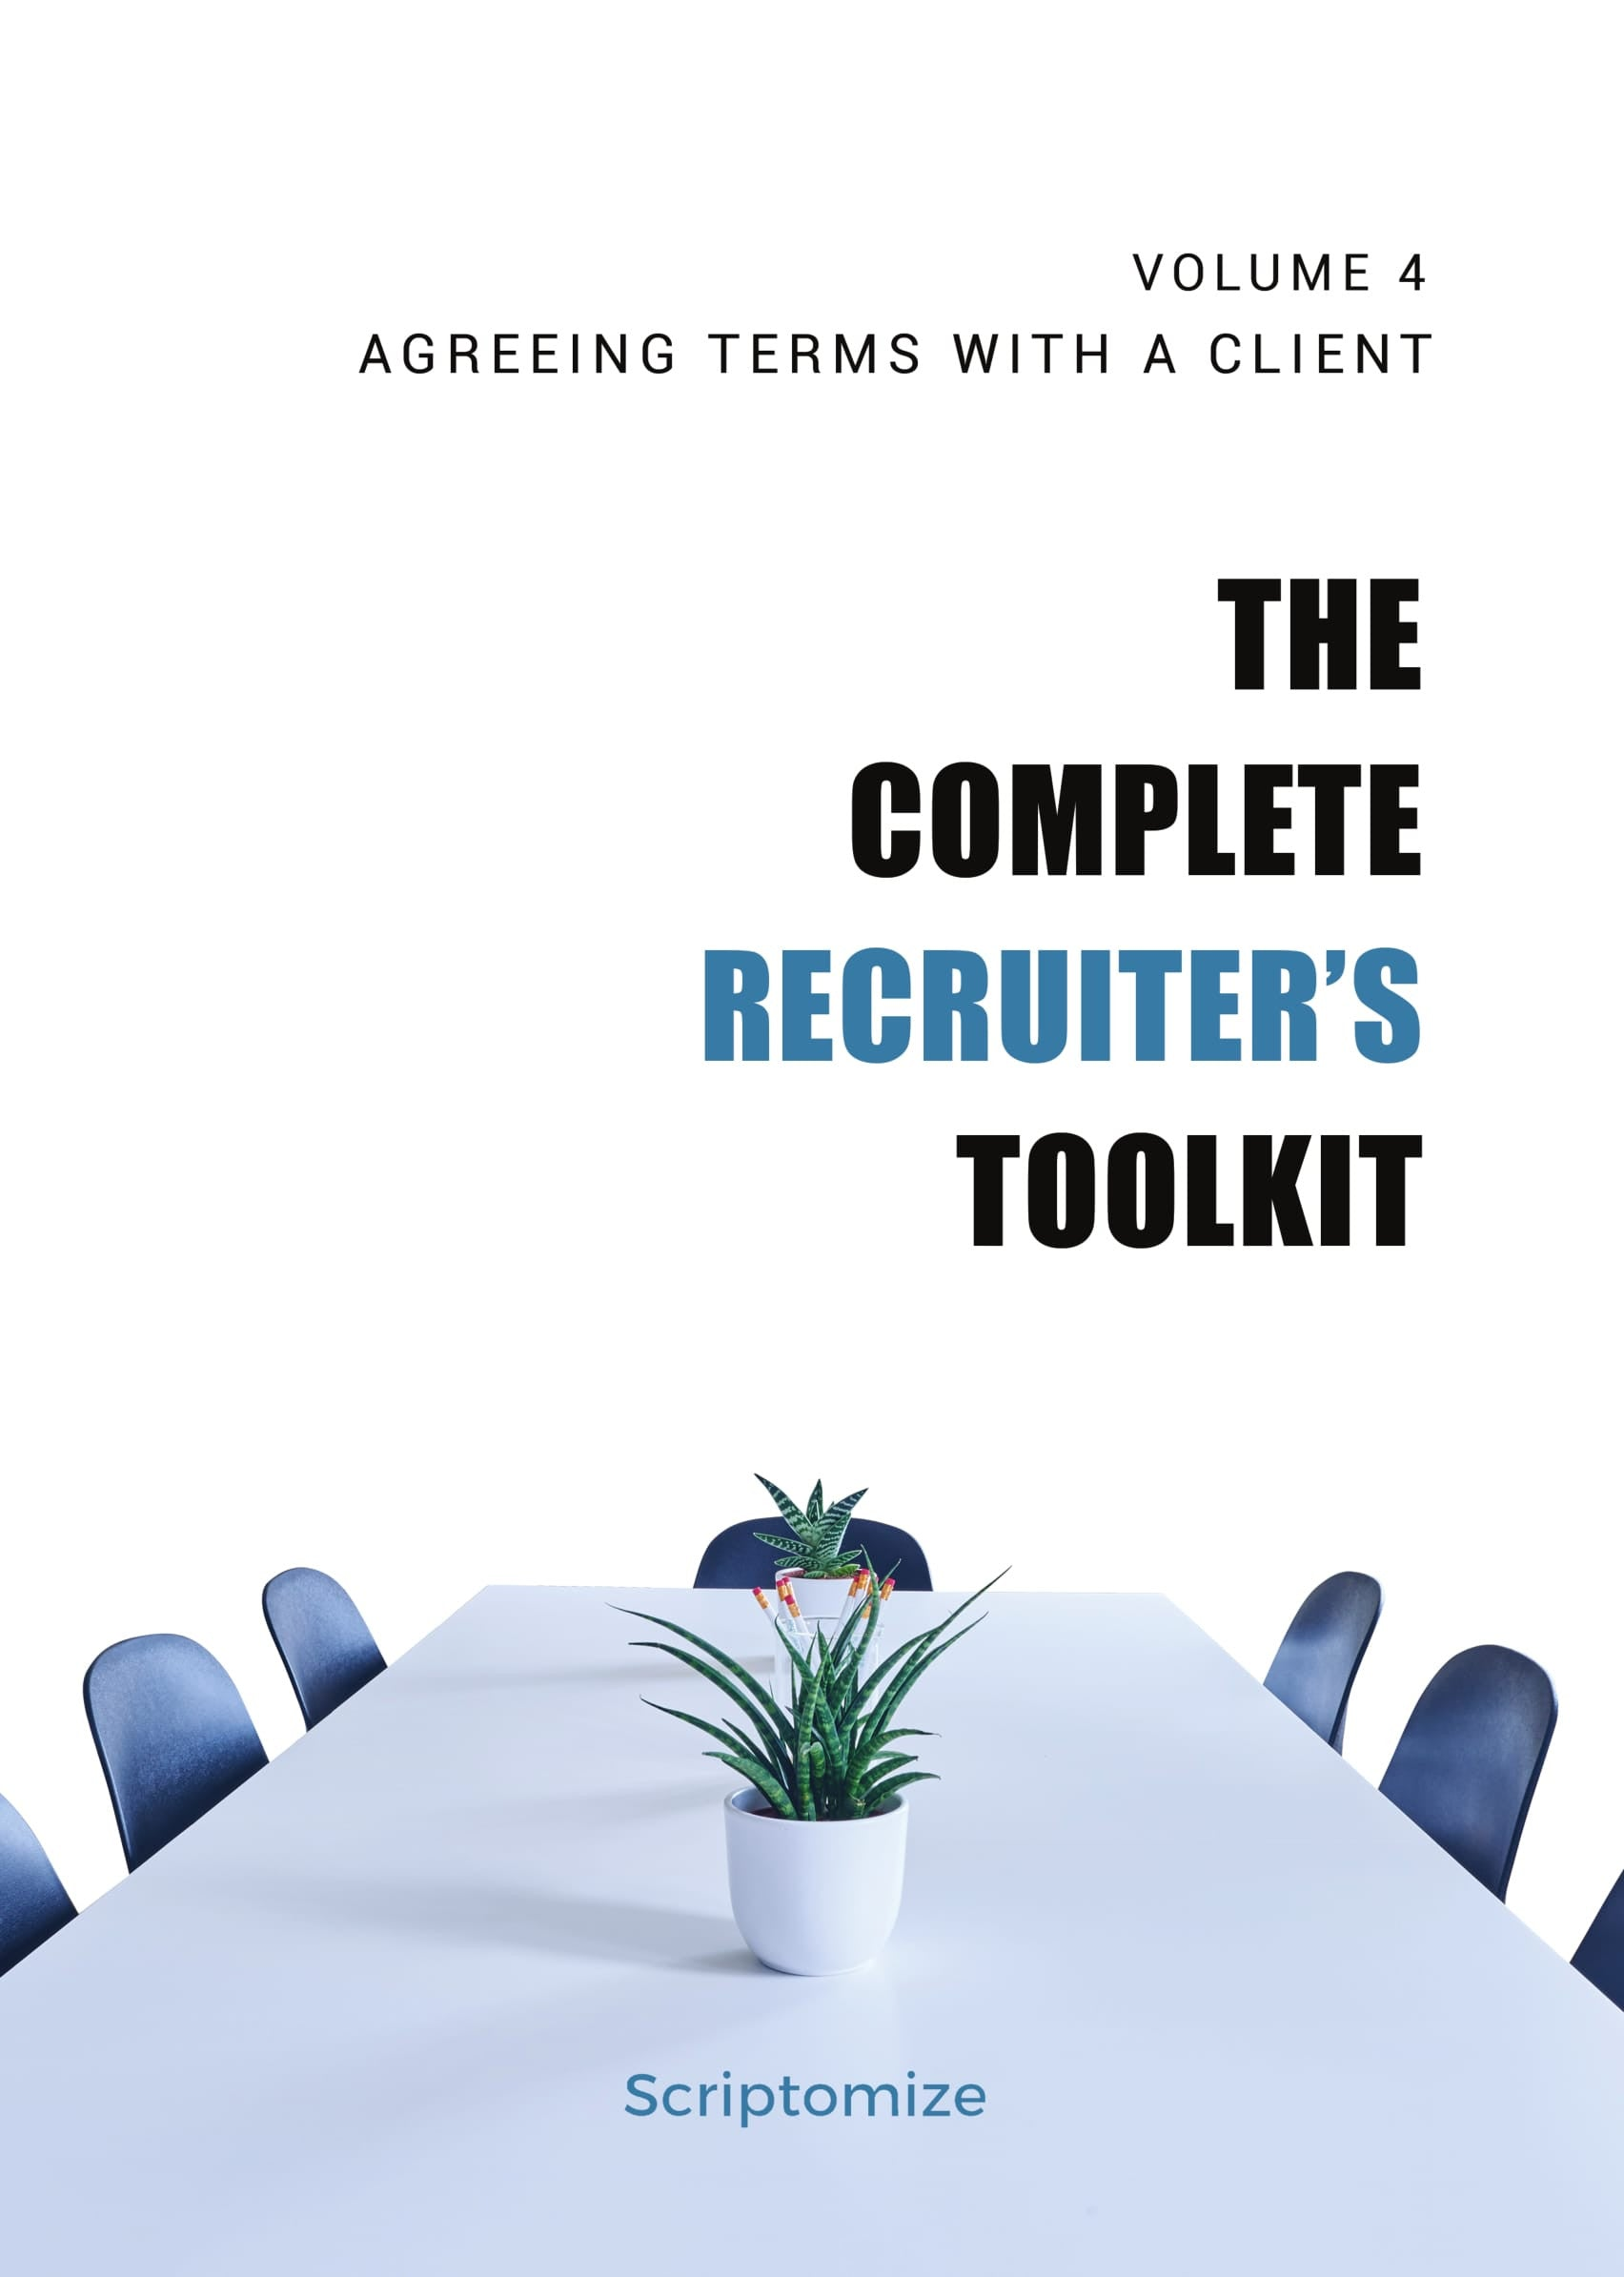 The Complete Recruiter's Toolkit Volume 4: Agreeing Terms with a Client